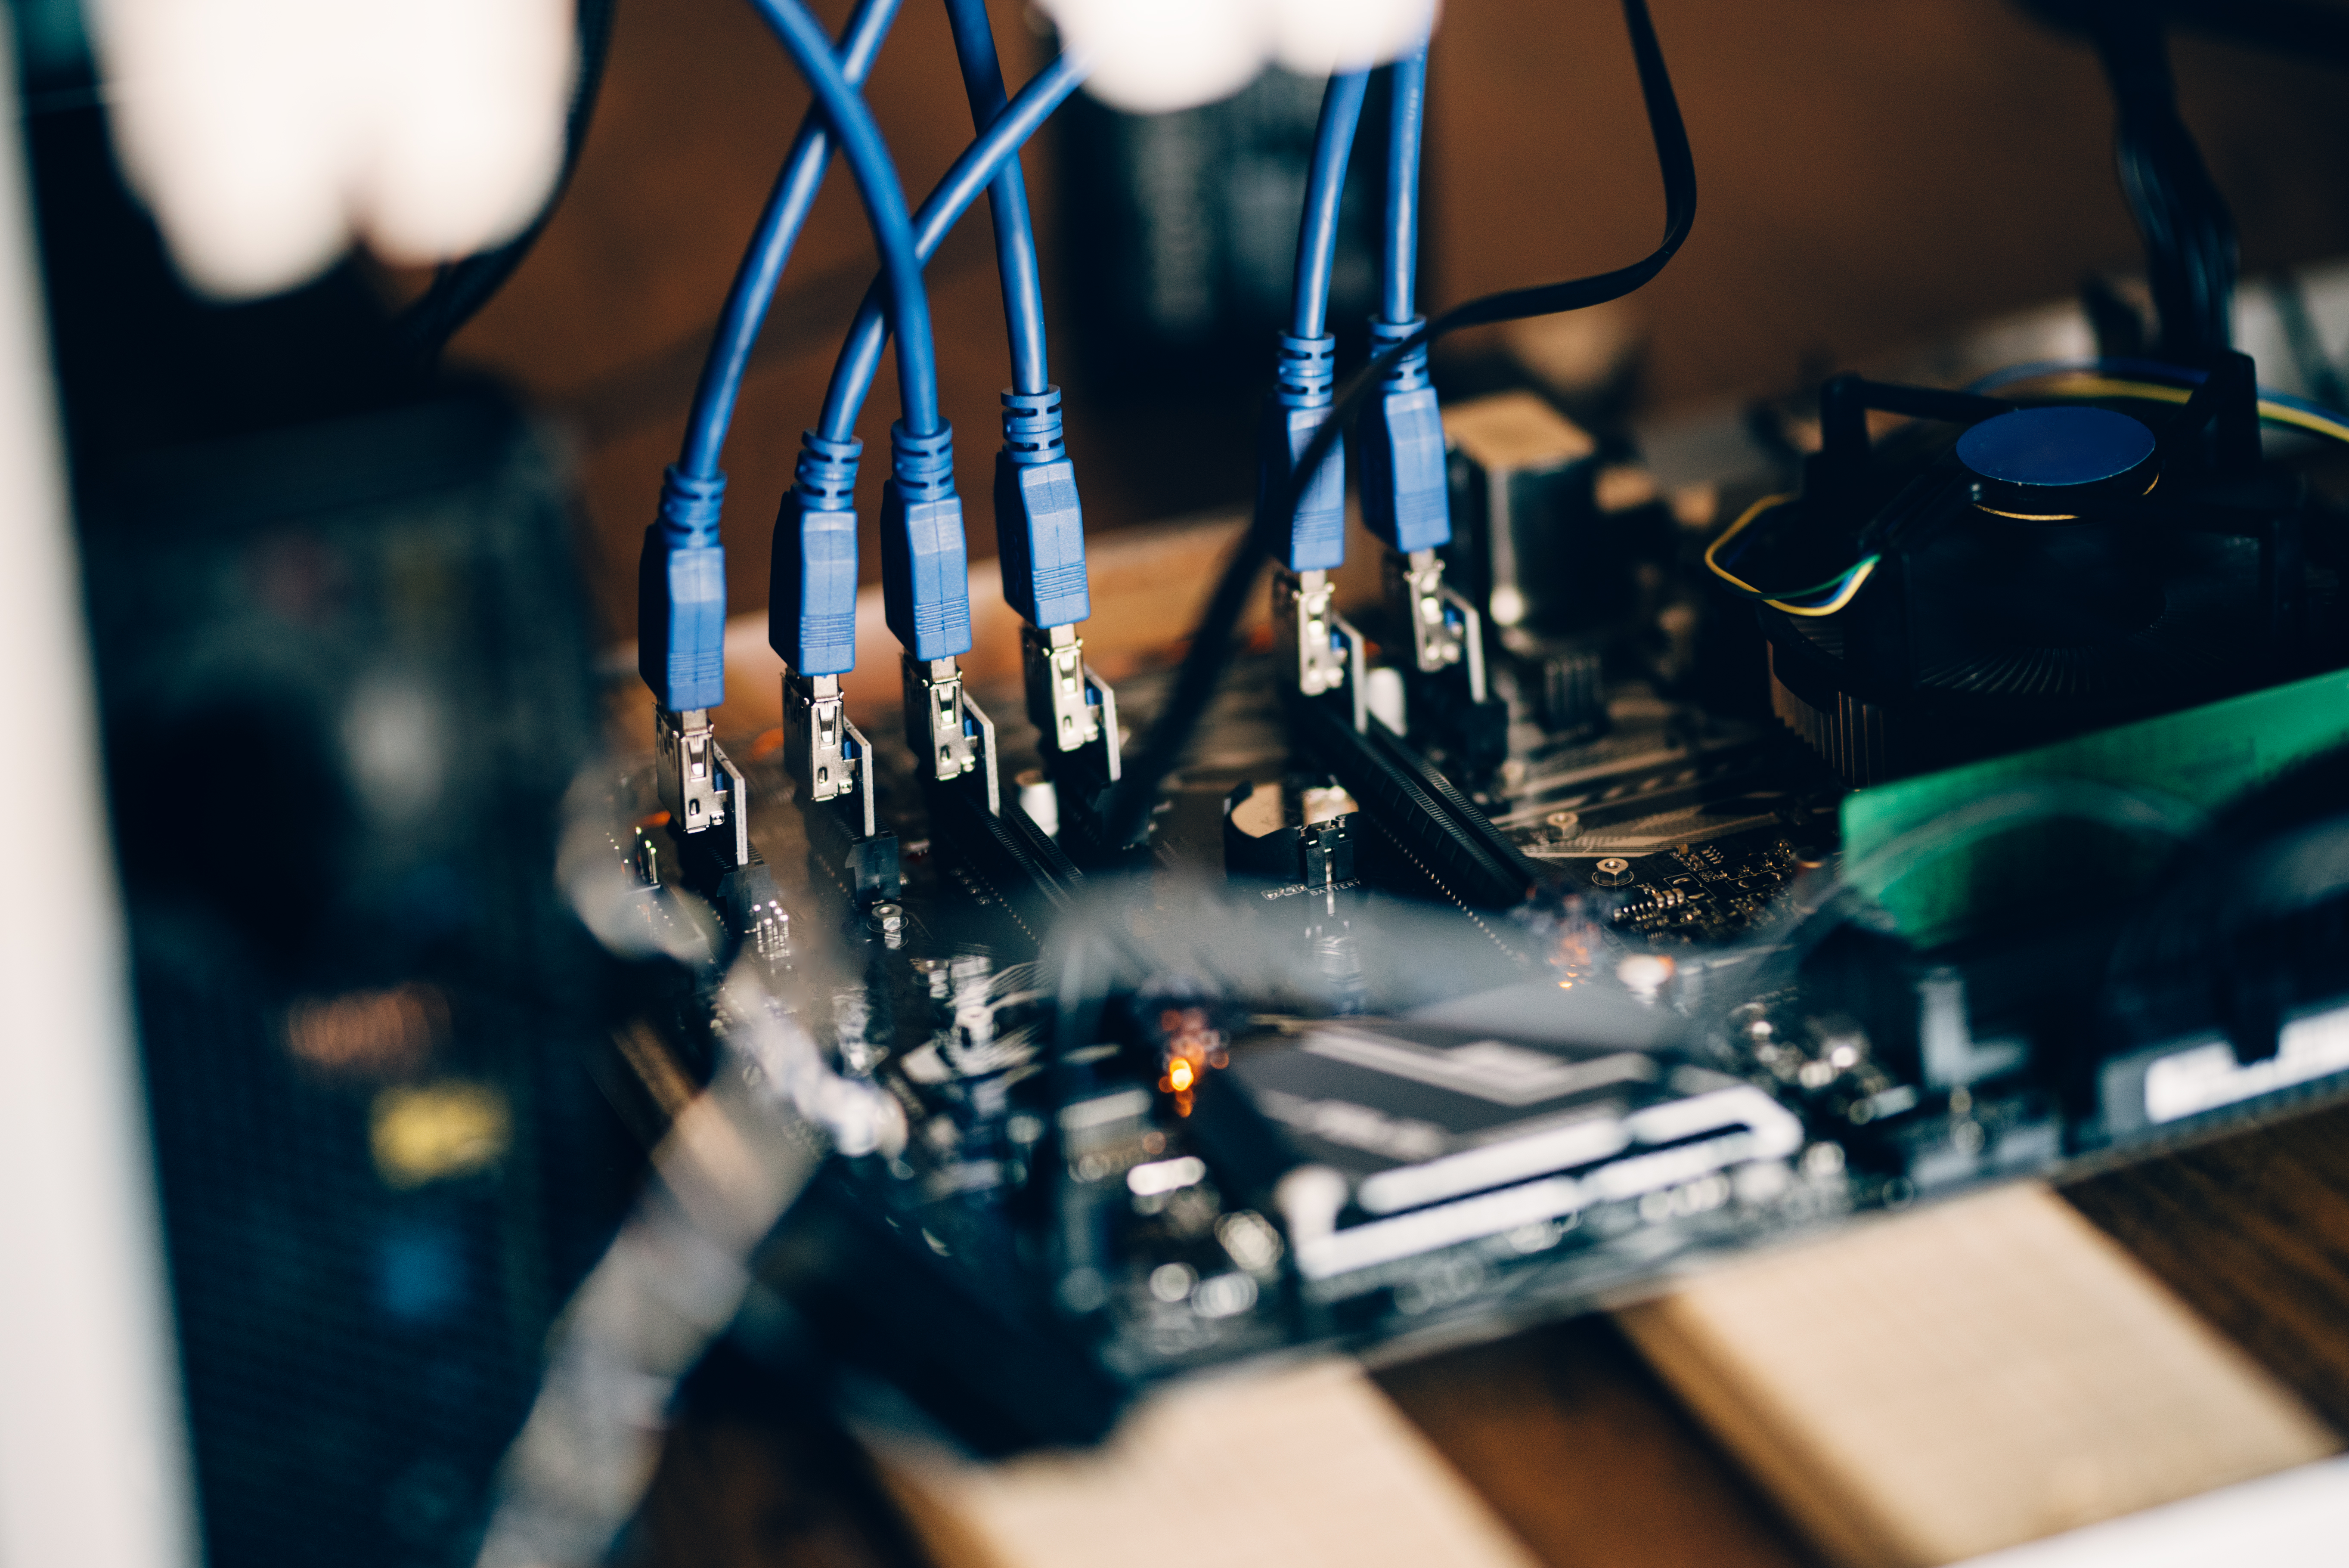 graphics-cards-mining-rig-details-of-motherboard-s-PH2Z39X.jpg